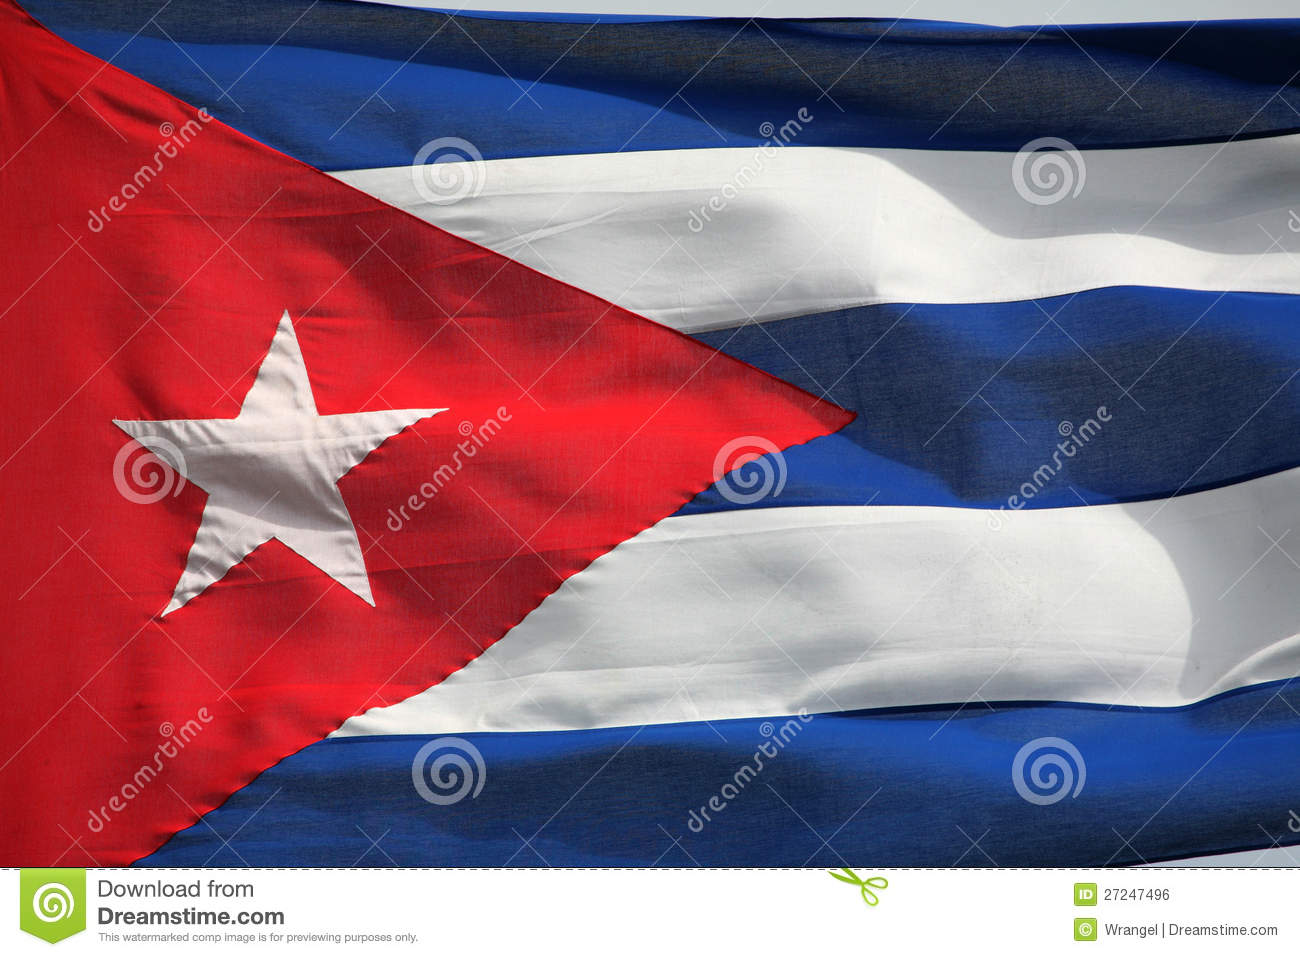 """essays on dreaming in cuban That """"our identities have changed over time,"""" as stuart hall argues in his essay """"radical 2 and jorge into """"dreaming in cuban"""" to shed light on the."""